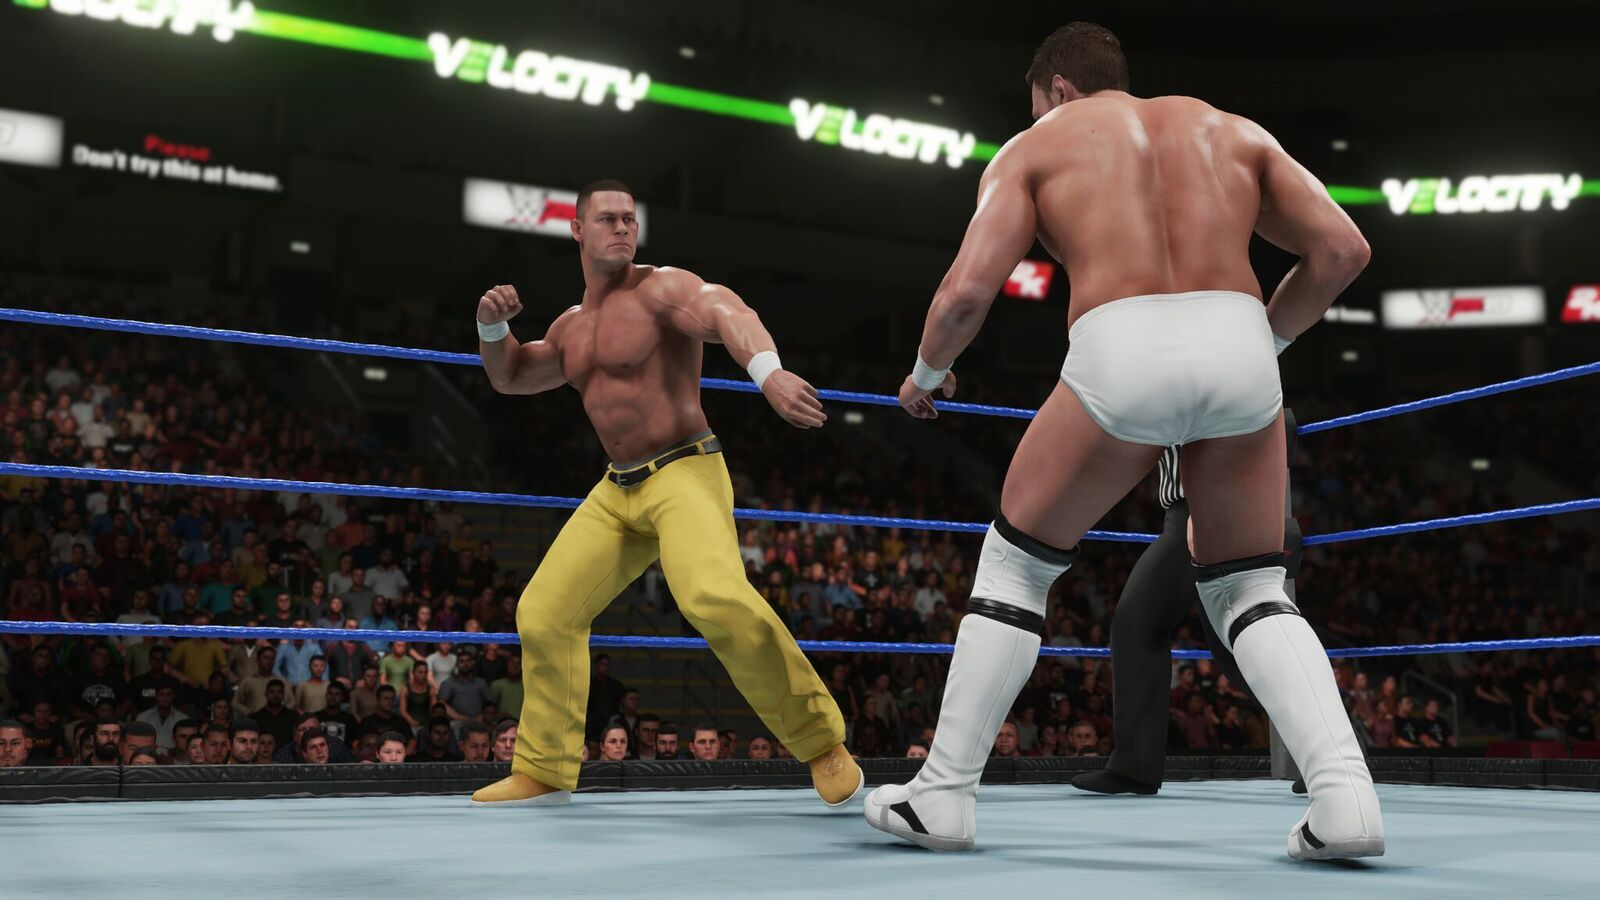 WWE 2K19 for MacBook gameplay